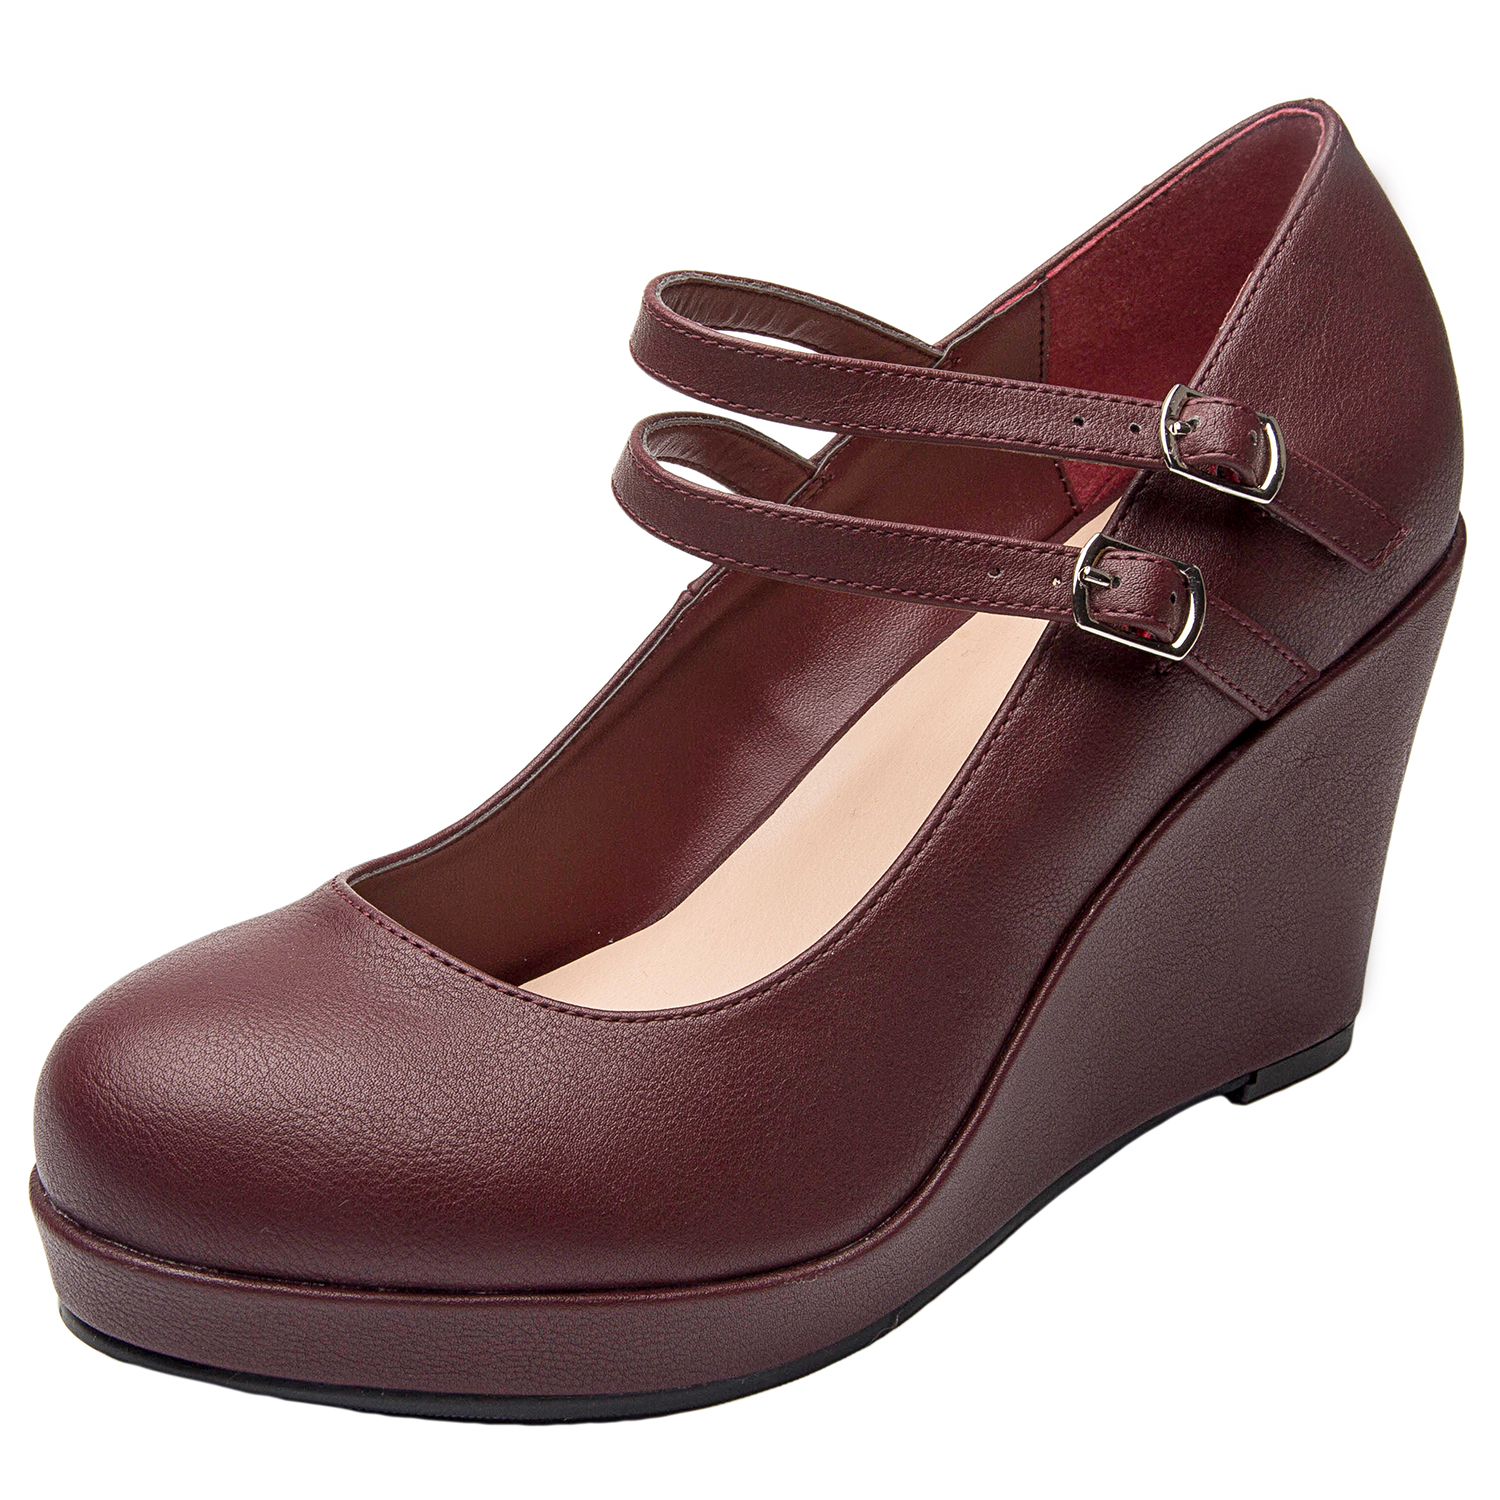 4e81dd1d275c Luoika Women s Wide Width Wedge Shoes - Mary Jane Ankle Buckle Double Strap  Round Closed Toe. Loading zoom